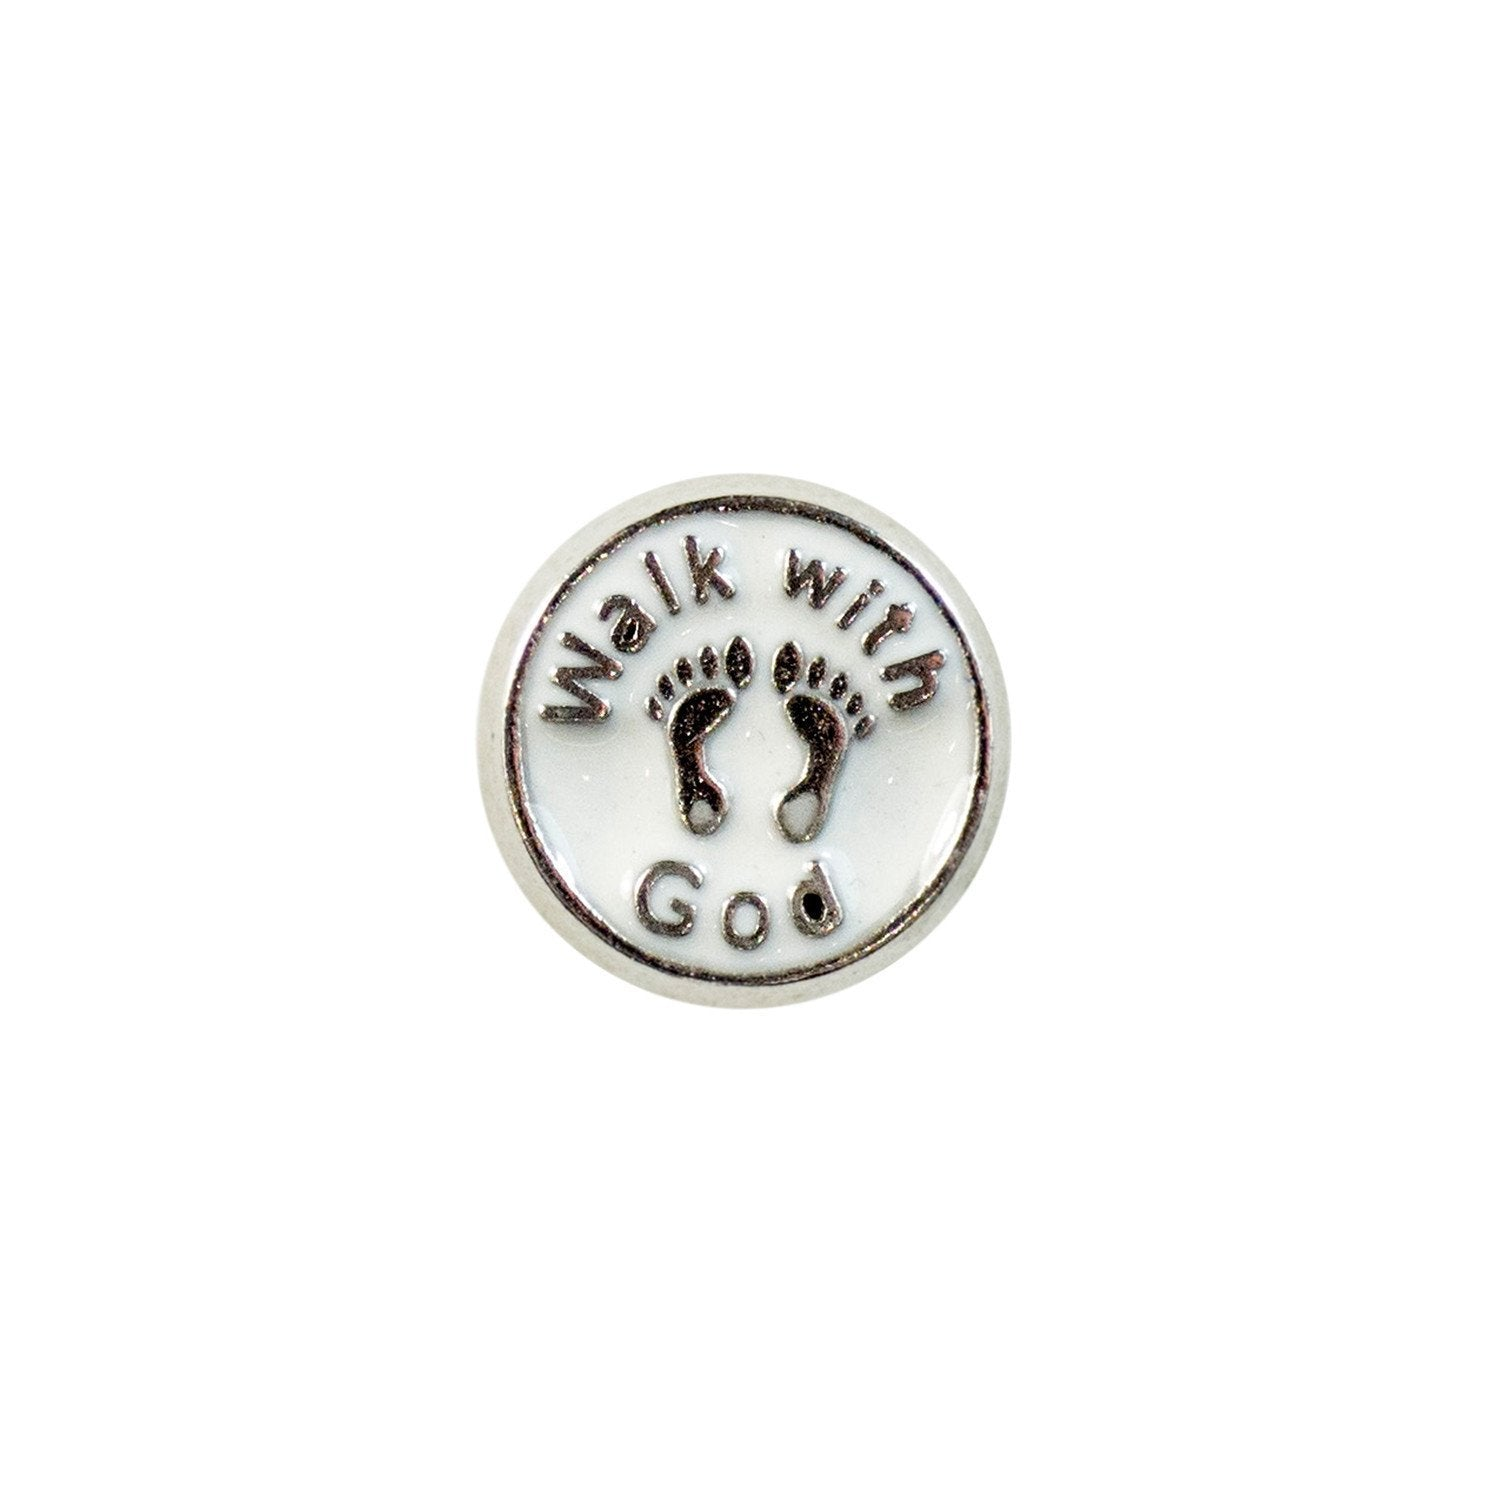 Memory Locket Charm - Walk with God